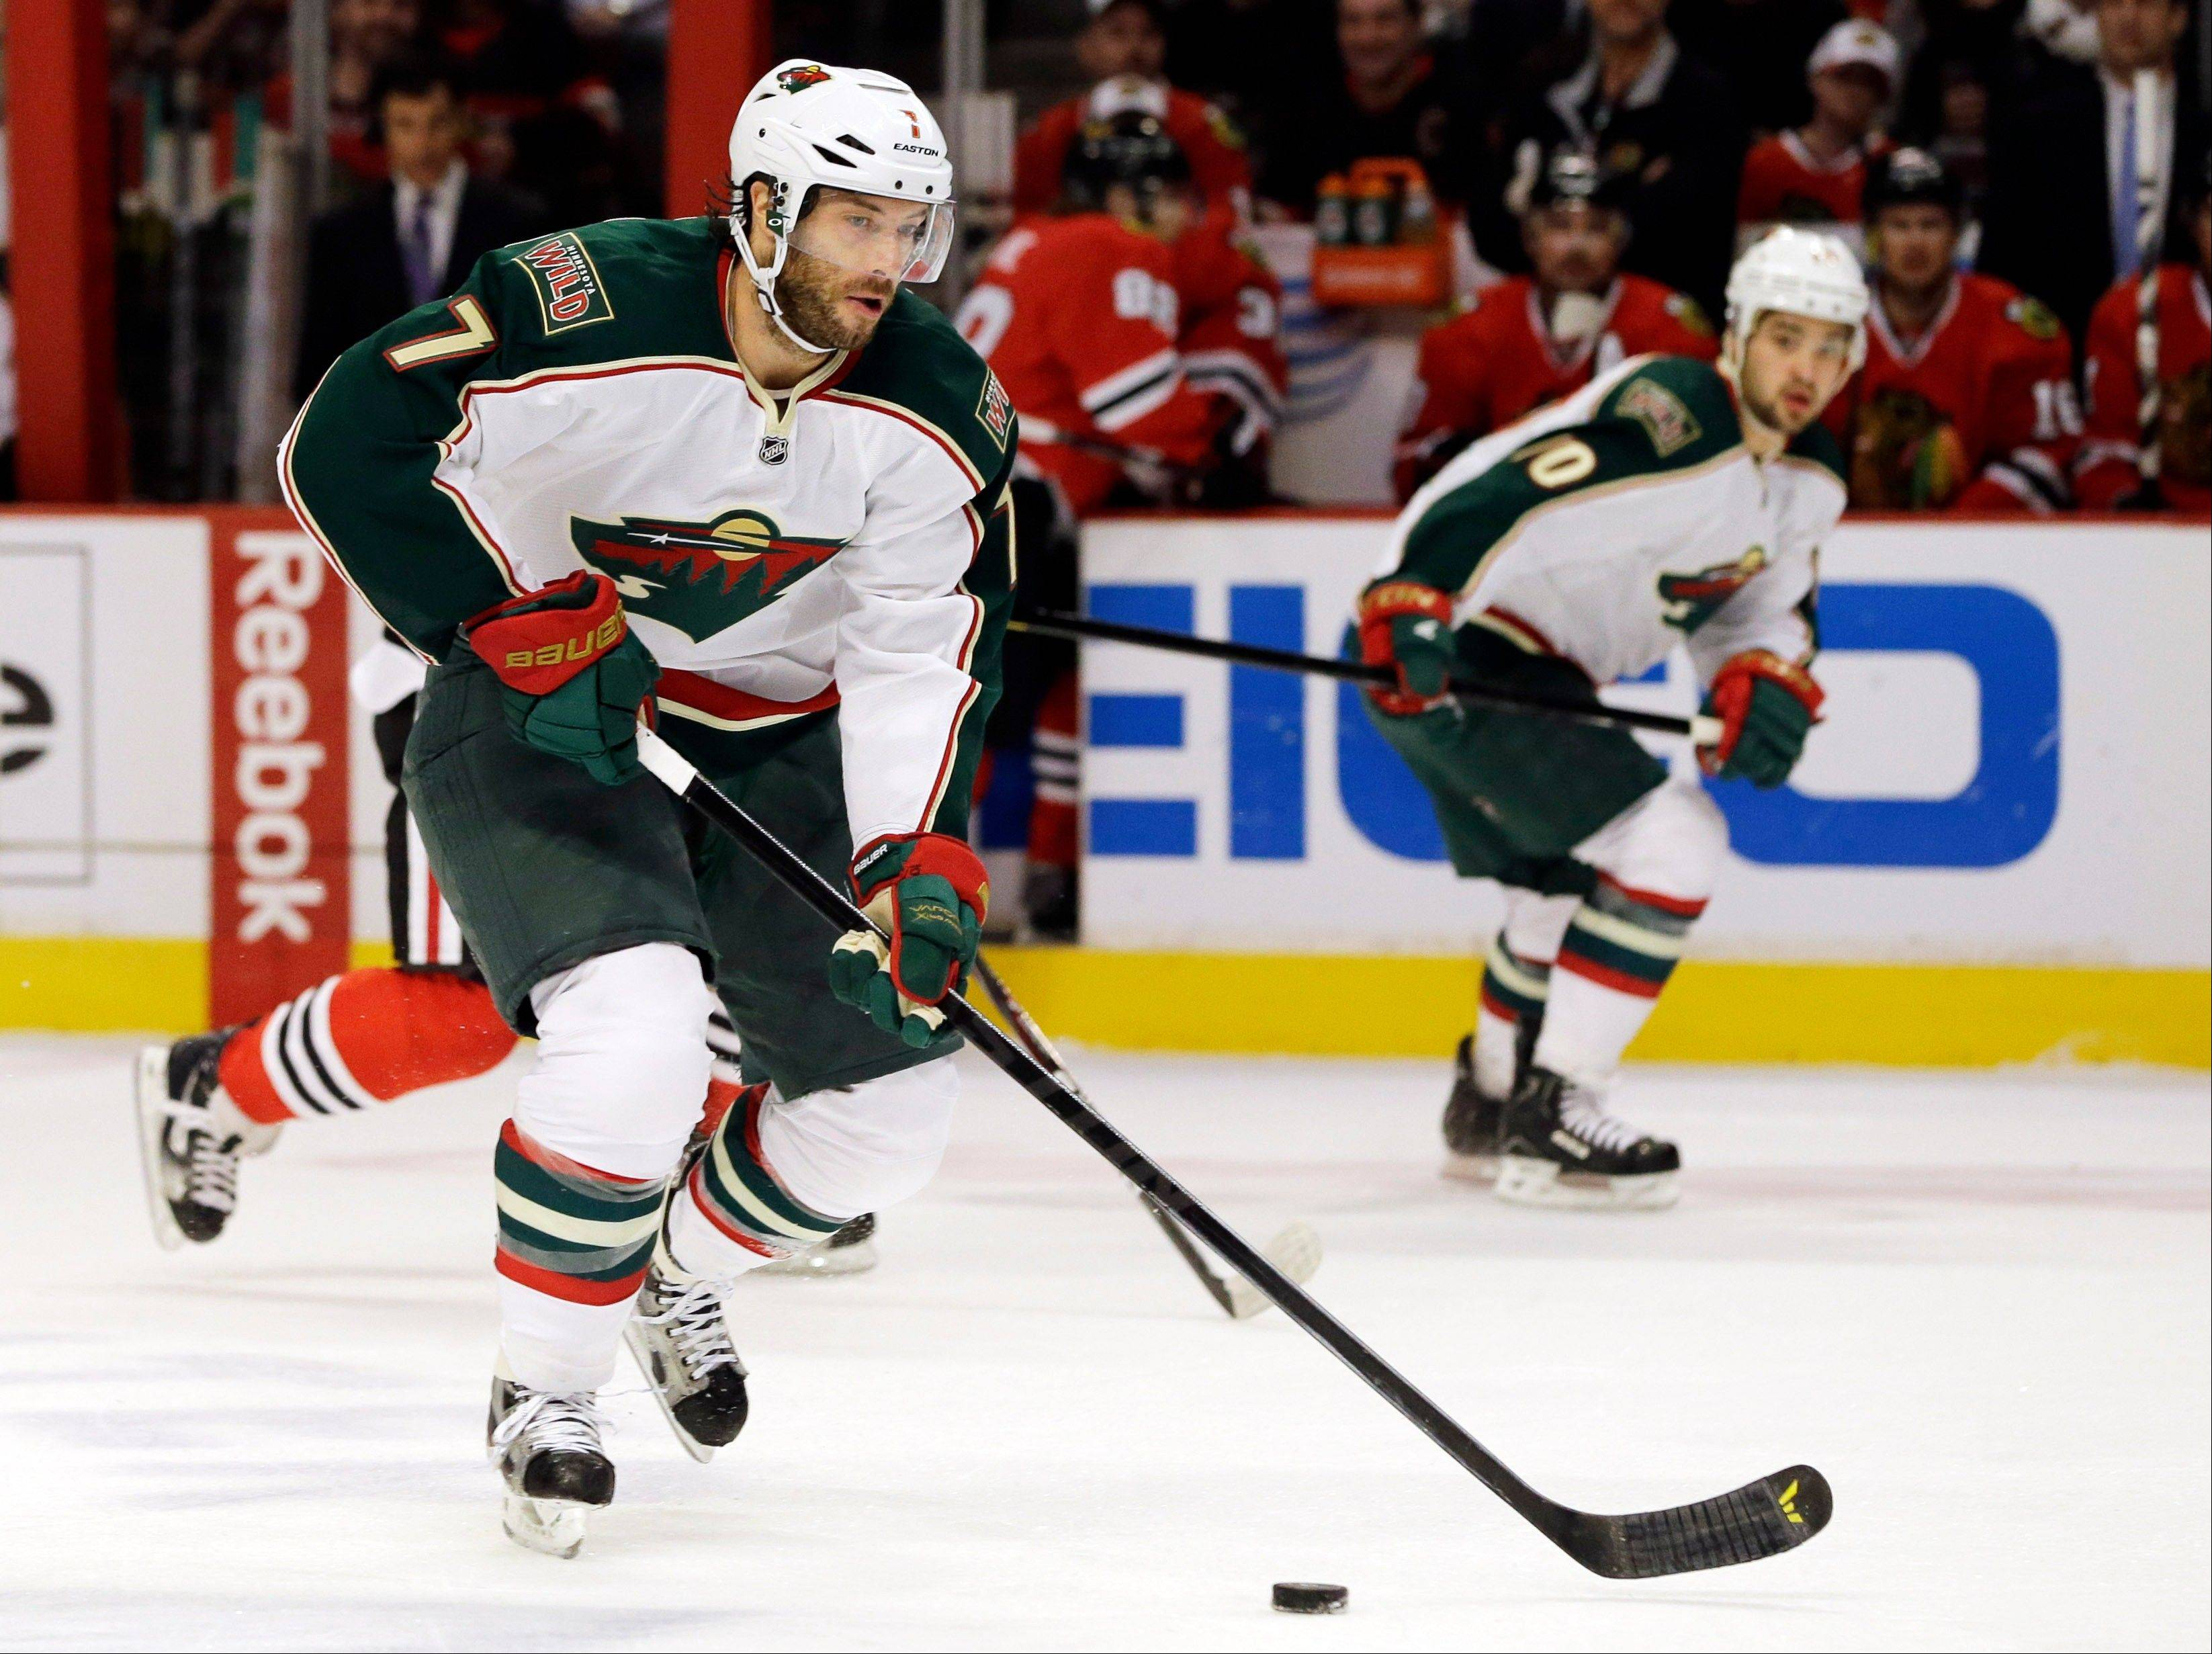 Minnesota Wild's Matt Cullen (7) controls the puck as he looks to pass during the first period of Game 5 of an NHL hockey Stanley Cup first-round playoff series against the Chicago Blackhawks in Chicago, Thursday, May 9, 2013.